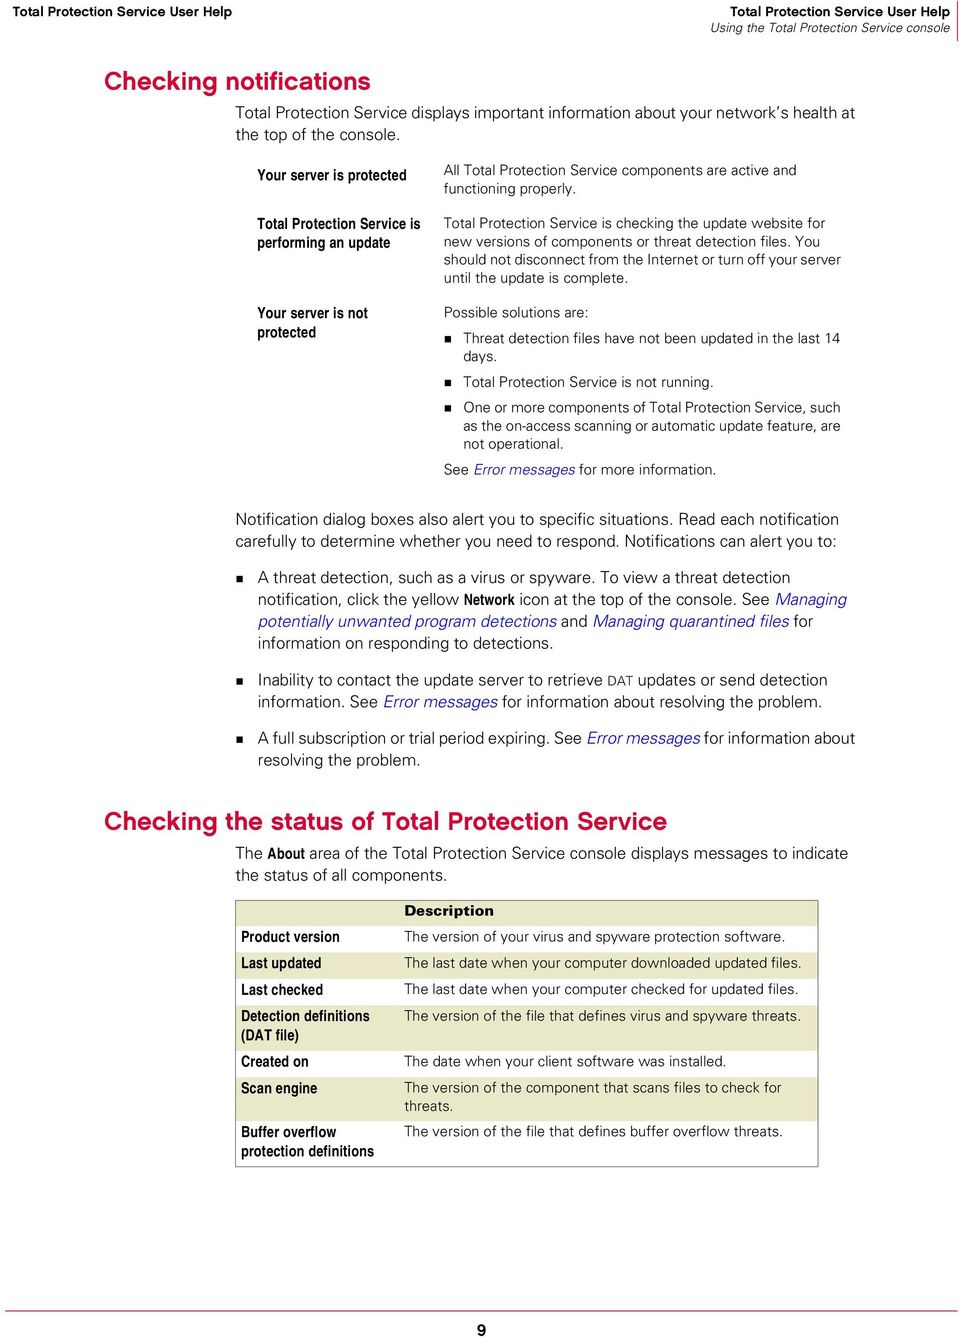 Total Protection Service is checking the update website for new versions of components or threat detection files.